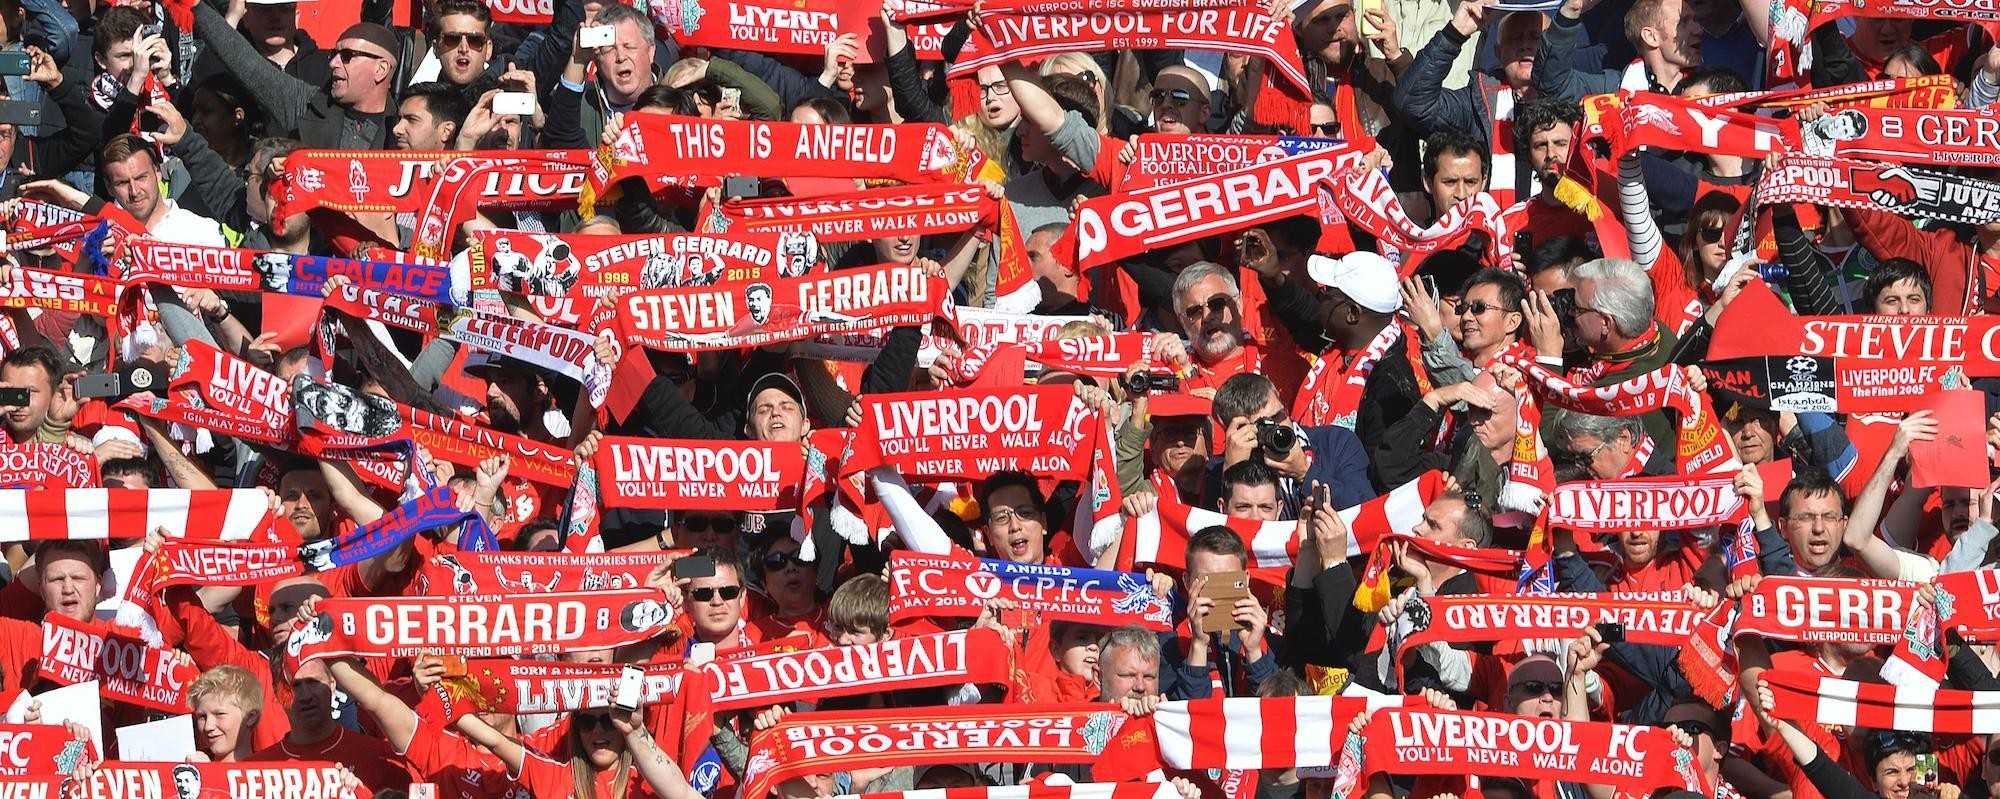 What Makes 'You'll Never Walk Alone' Such An Enduring Football Anthem?